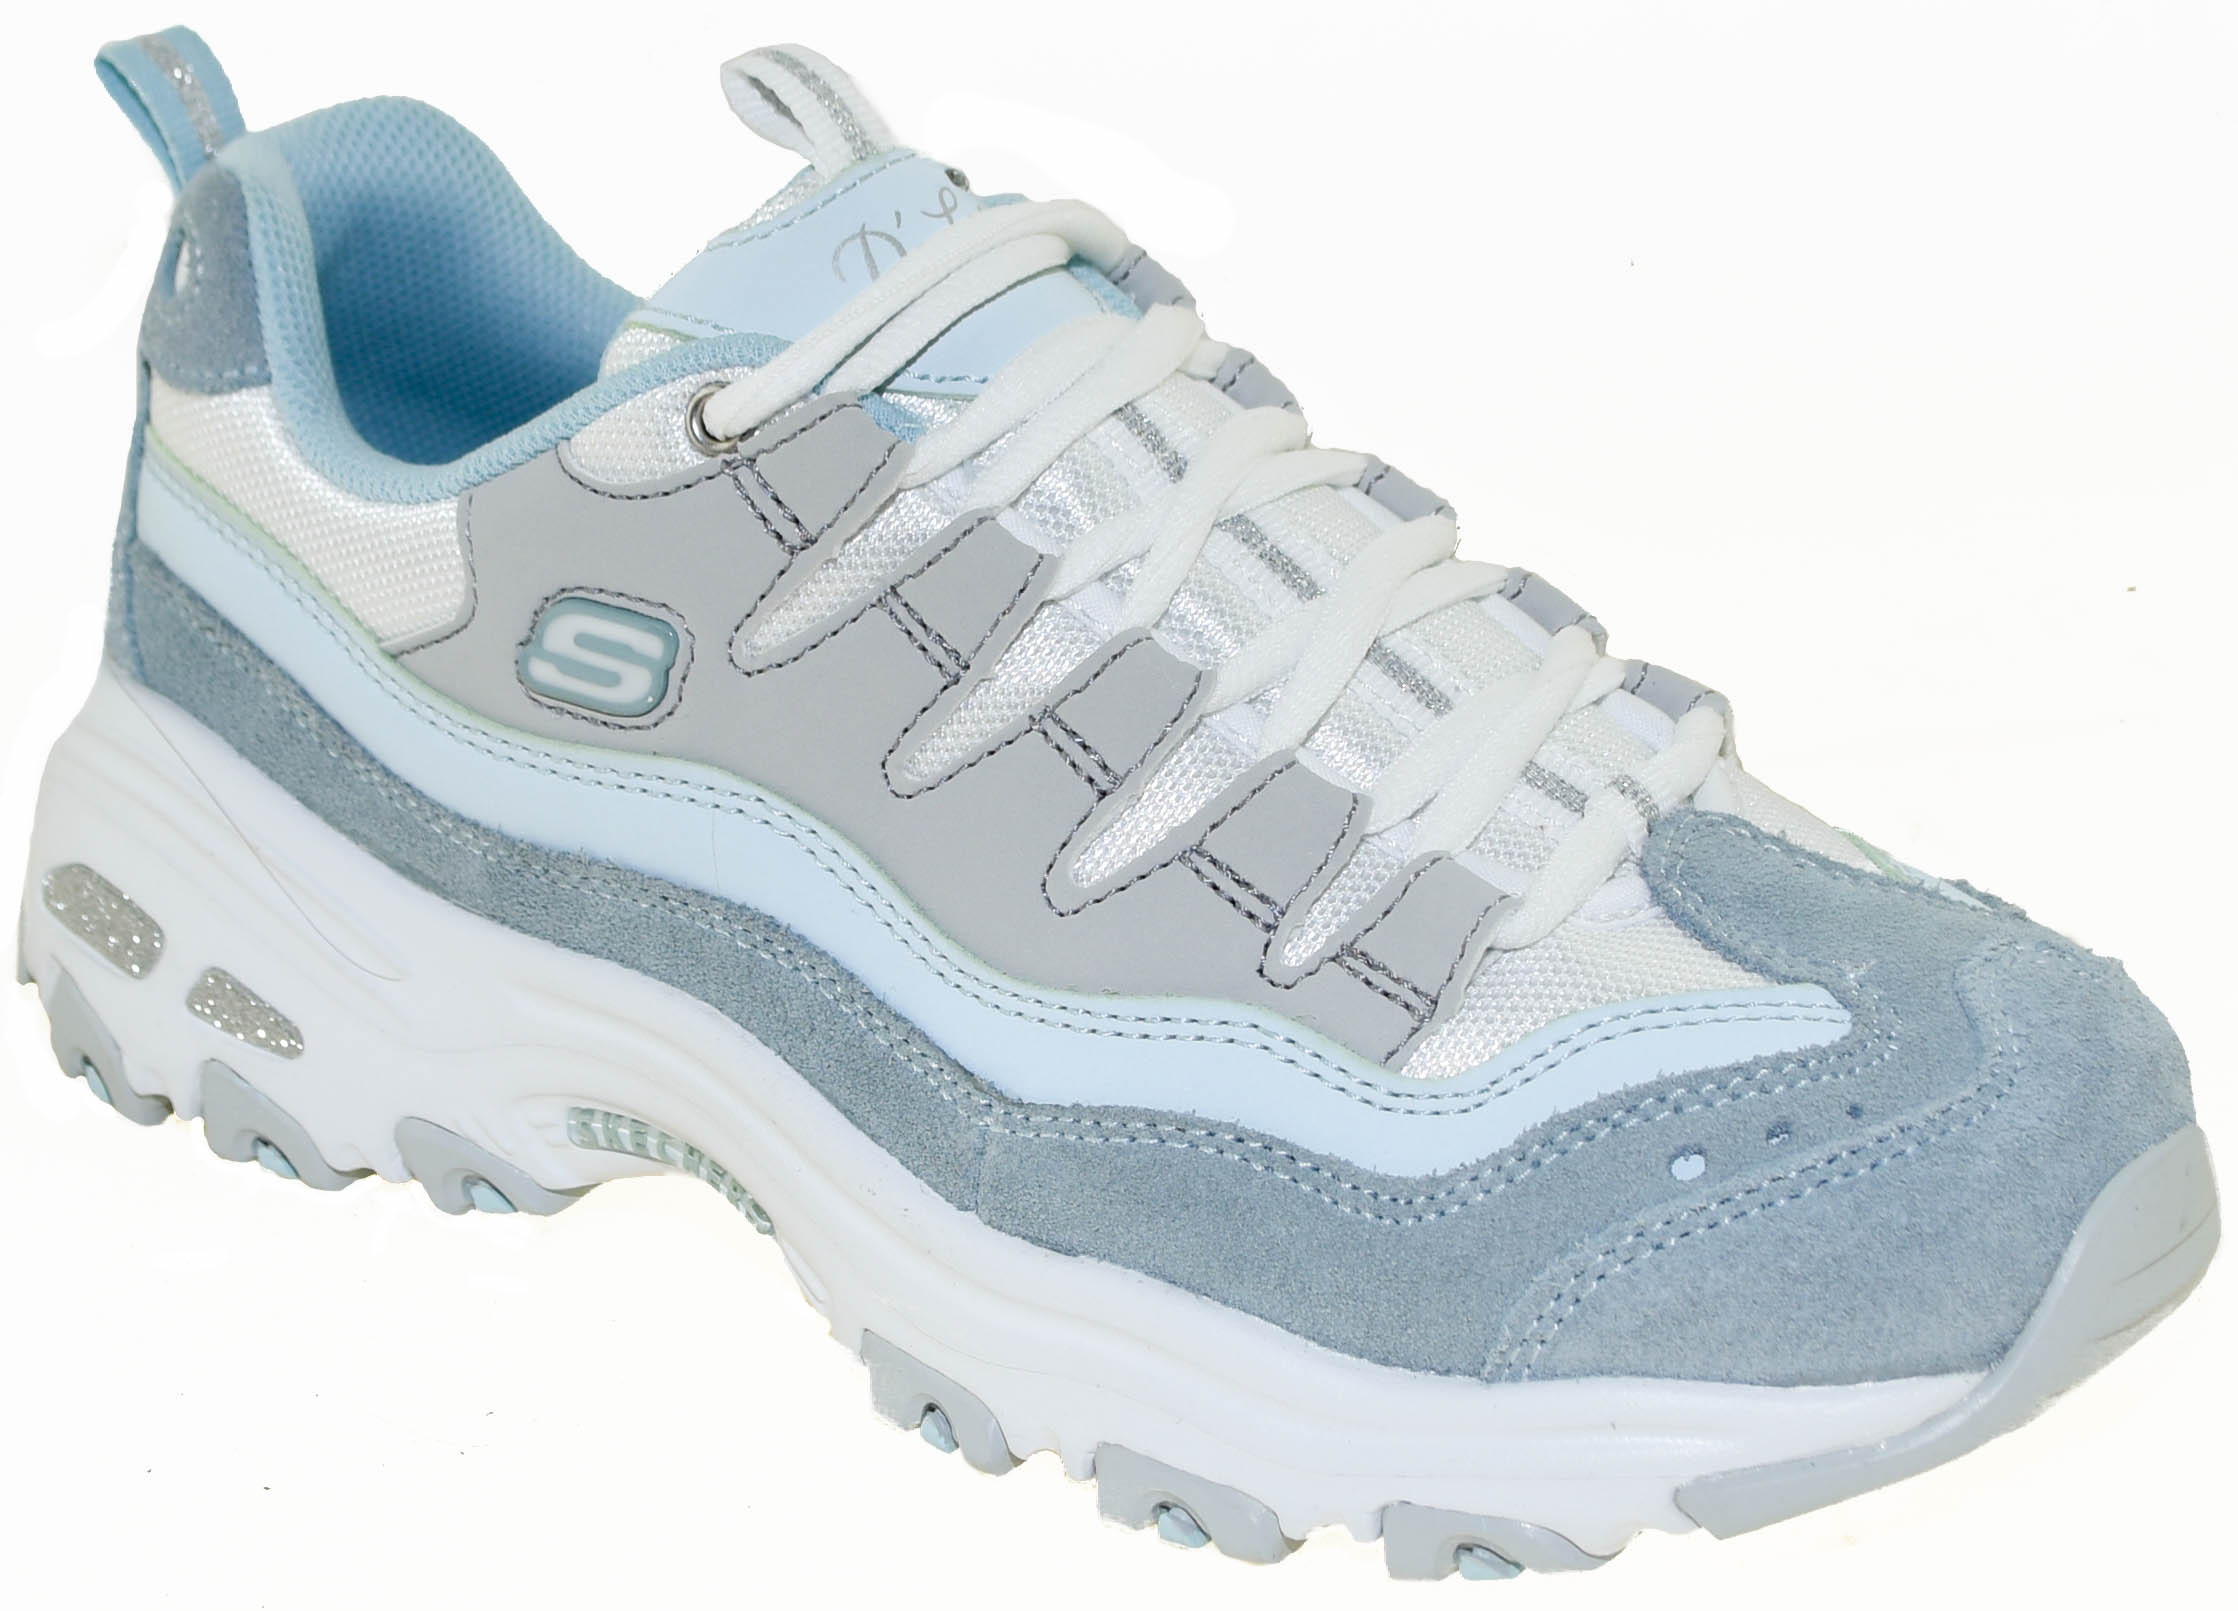 Ladies 13141 D'Lites Trainers In Light Blue And Grey